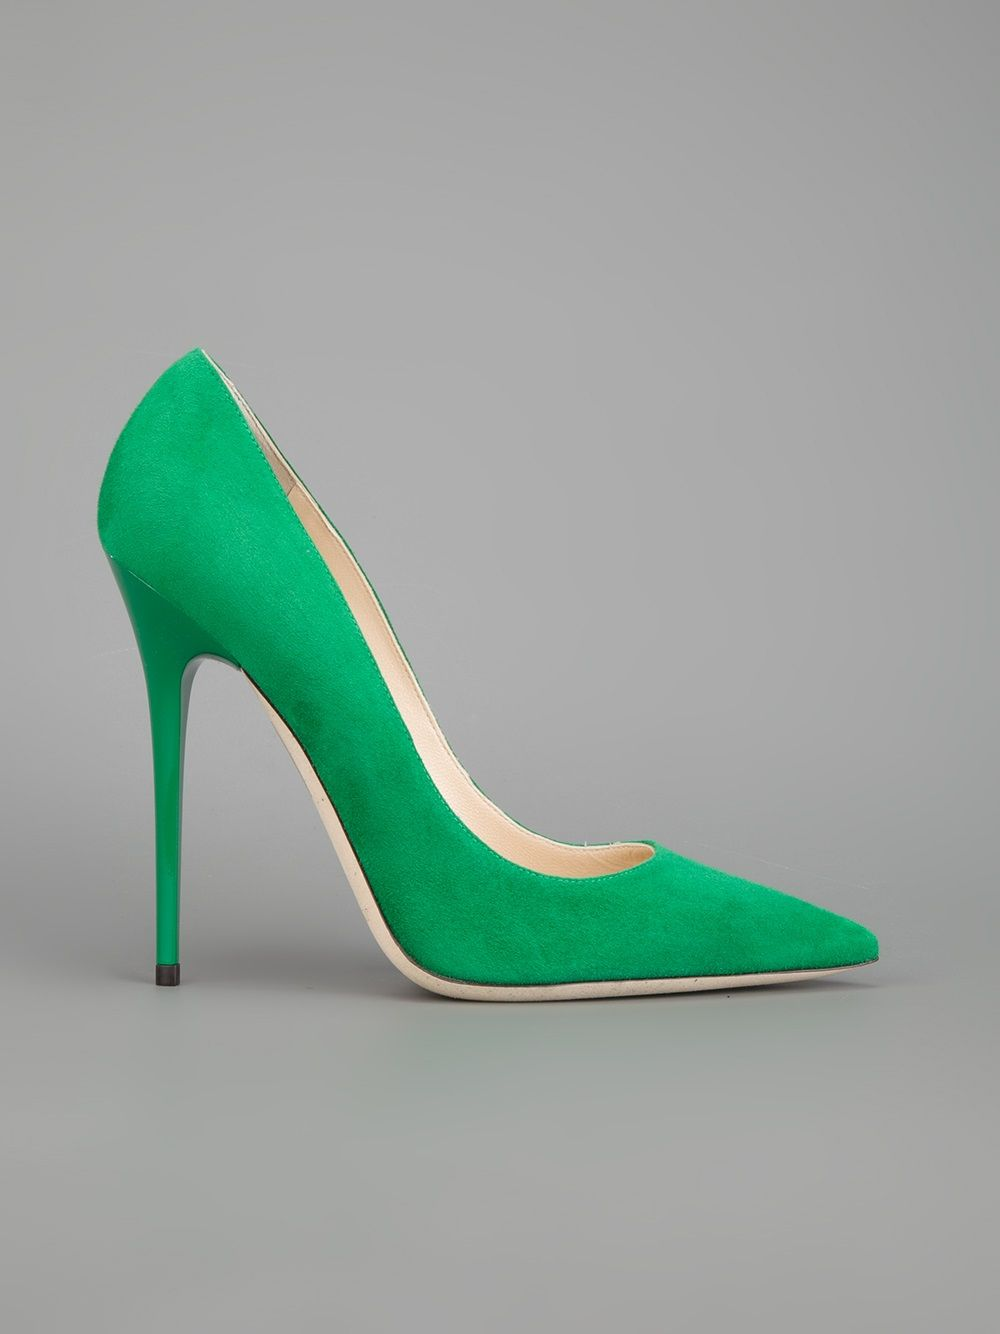 bed1b716e JIMMY CHOO - Sapato verde. 7 | Shoes II | Scarpin verde, Sapatos ...